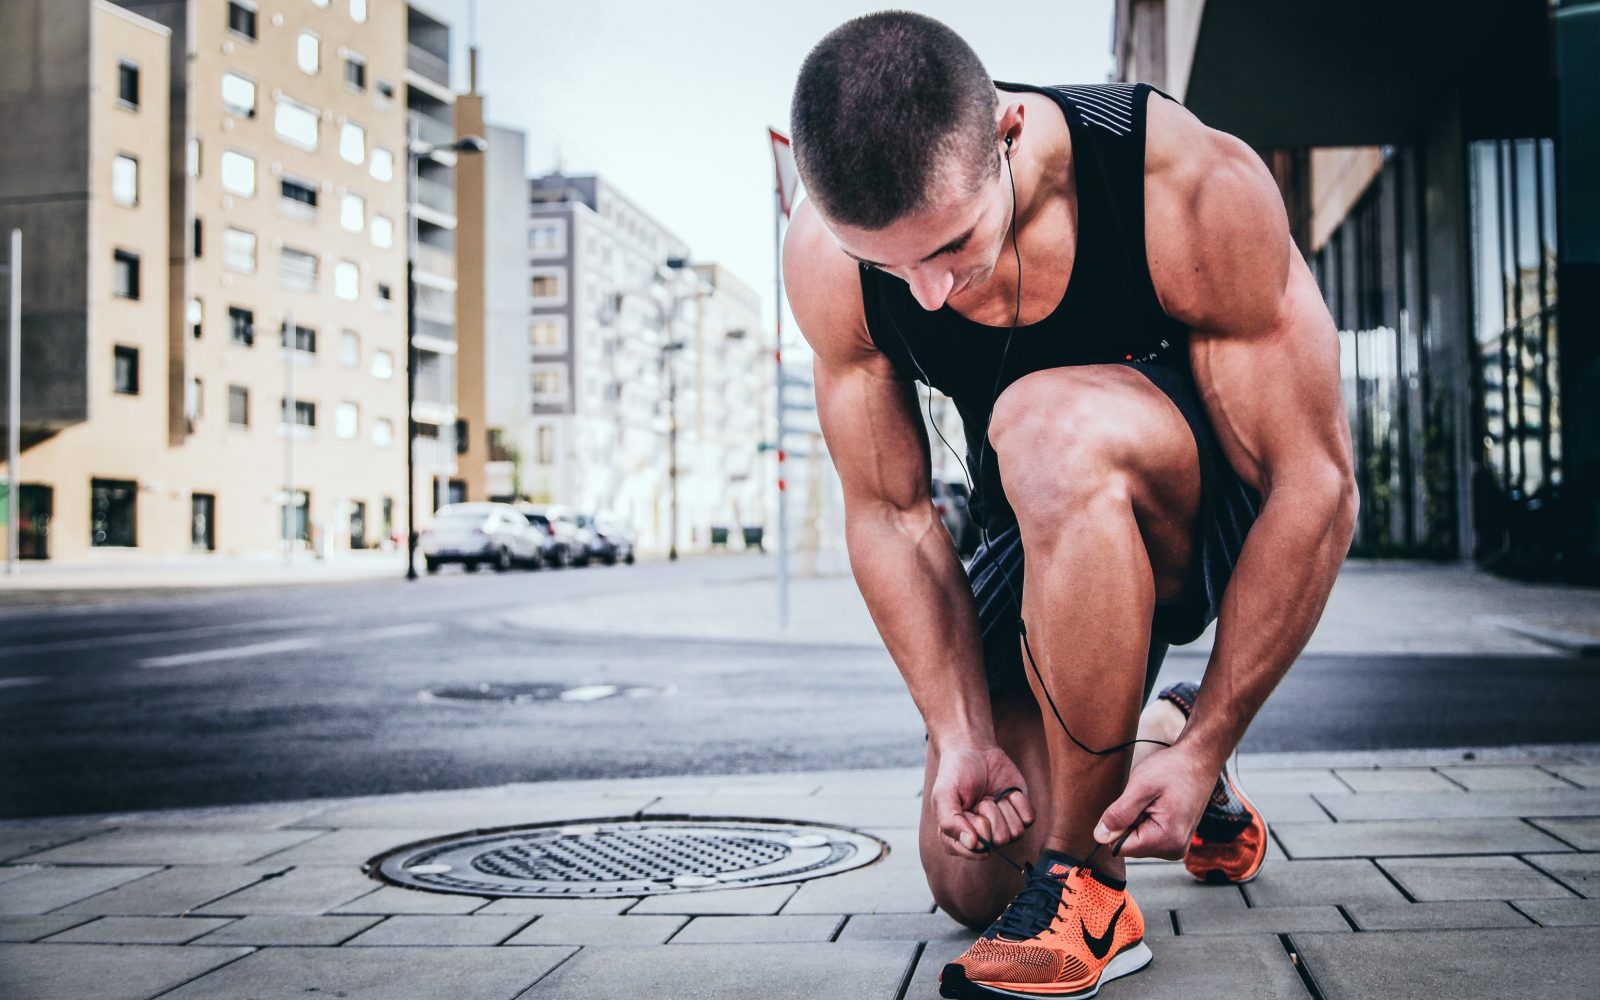 Episode 2: The Starting Line – How to START running the race of manhood